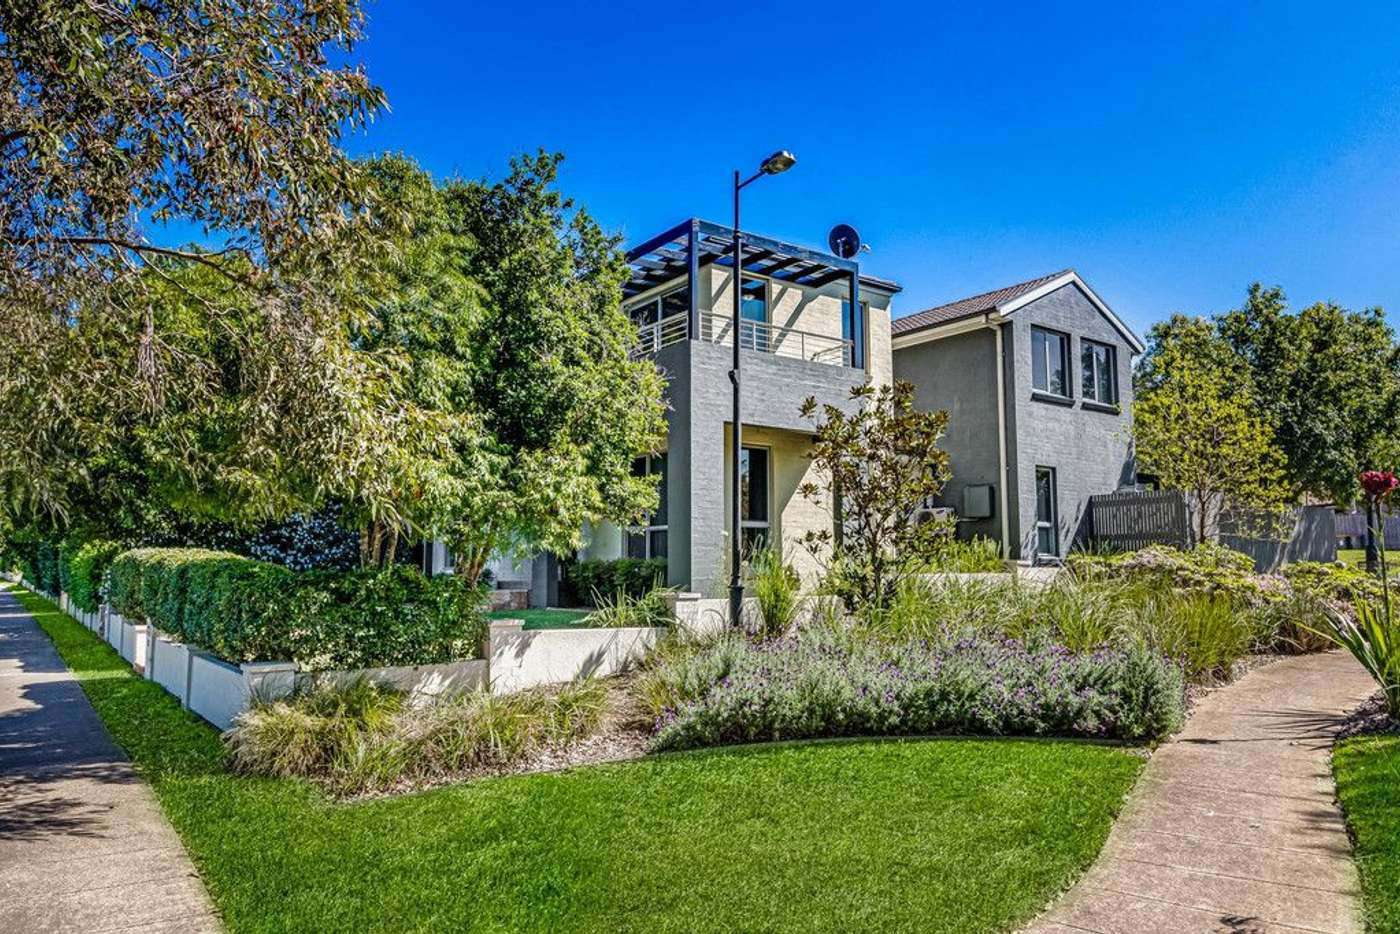 Main view of Homely house listing, 78 Stanhope Parkway, Stanhope Gardens NSW 2768